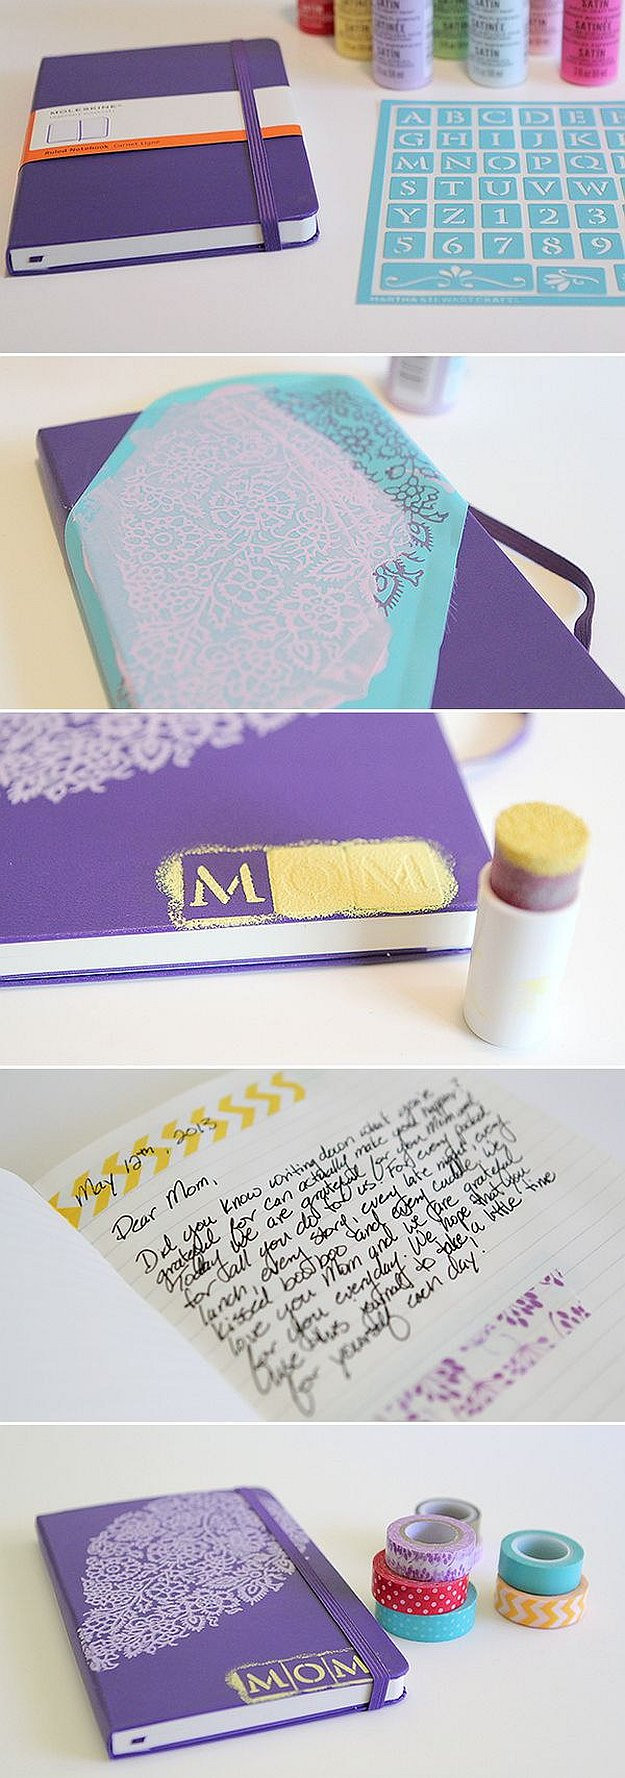 Best ideas about Birthday Gifts For Mother . Save or Pin 10 DIY Birthday Gift Ideas for Mom DIY Projects Craft Now.